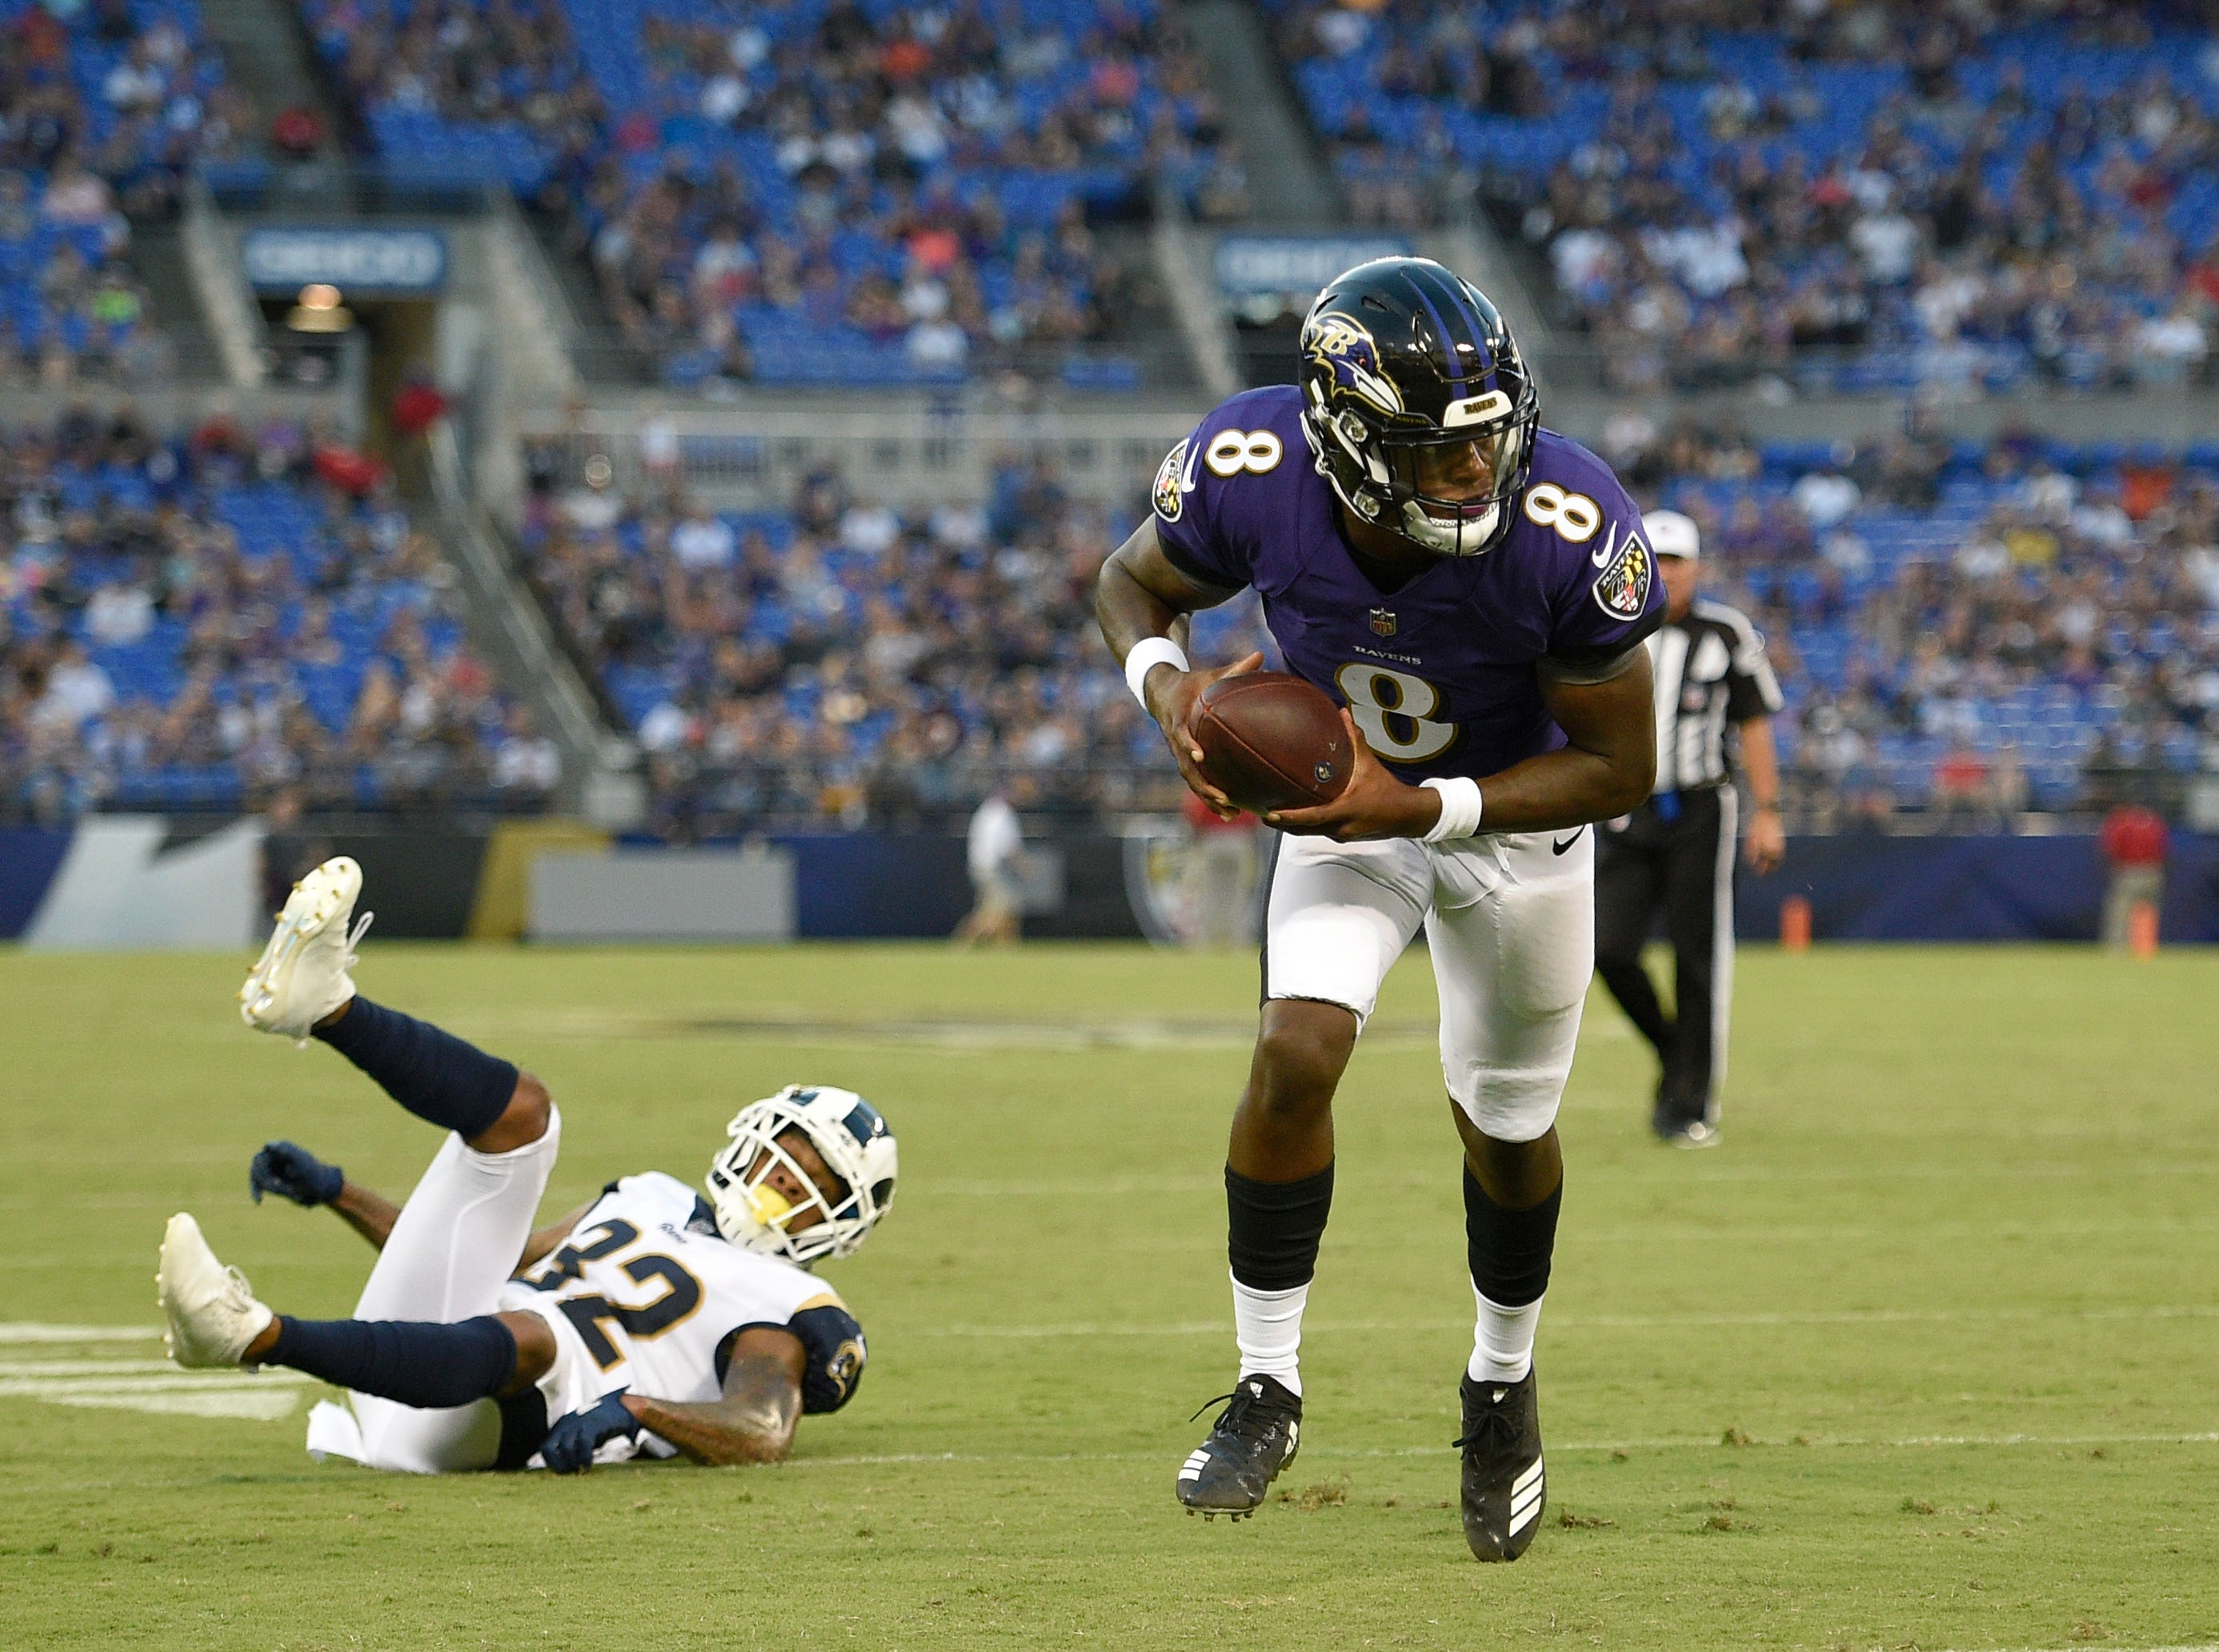 Baltimore Ravens quarterback Lamar Jackson, right, rushes past Los Angeles Rams cornerback Troy Hill for a touchdown in the first half of a preseason NFL football game, Thursday, Aug. 9, 2018, in Baltimore. (AP Photo/Nick Wass)